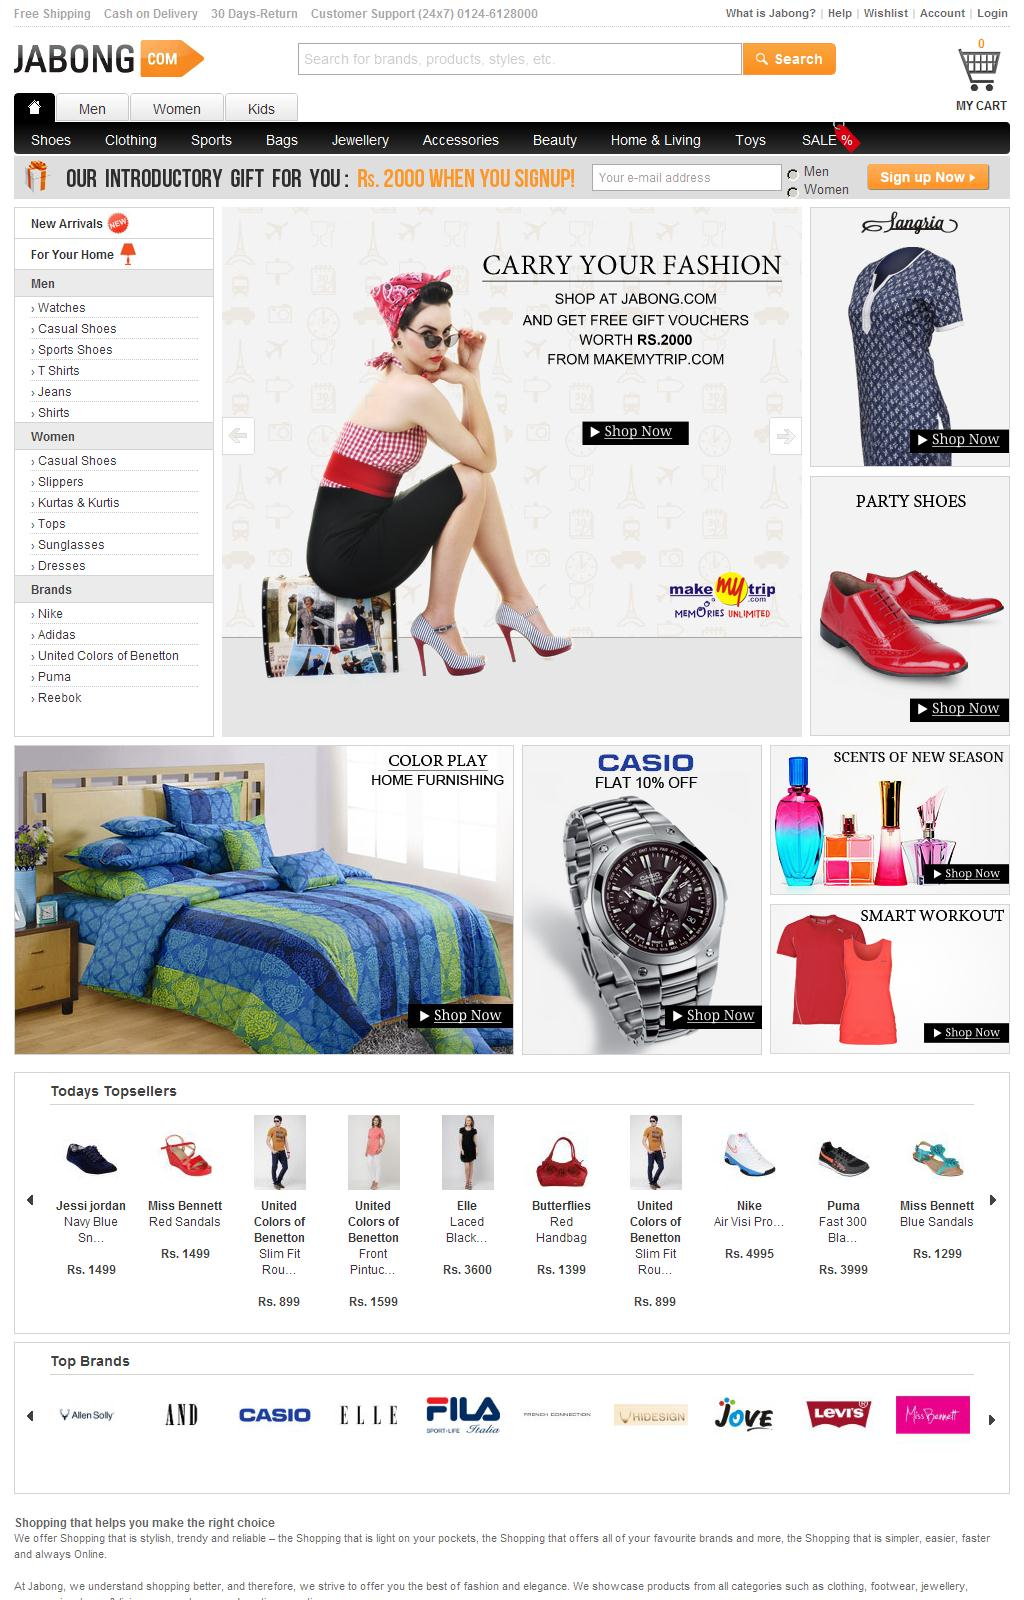 Online Shopping India – Shoes, Clothing, Accessories, Bags   Jabong.com